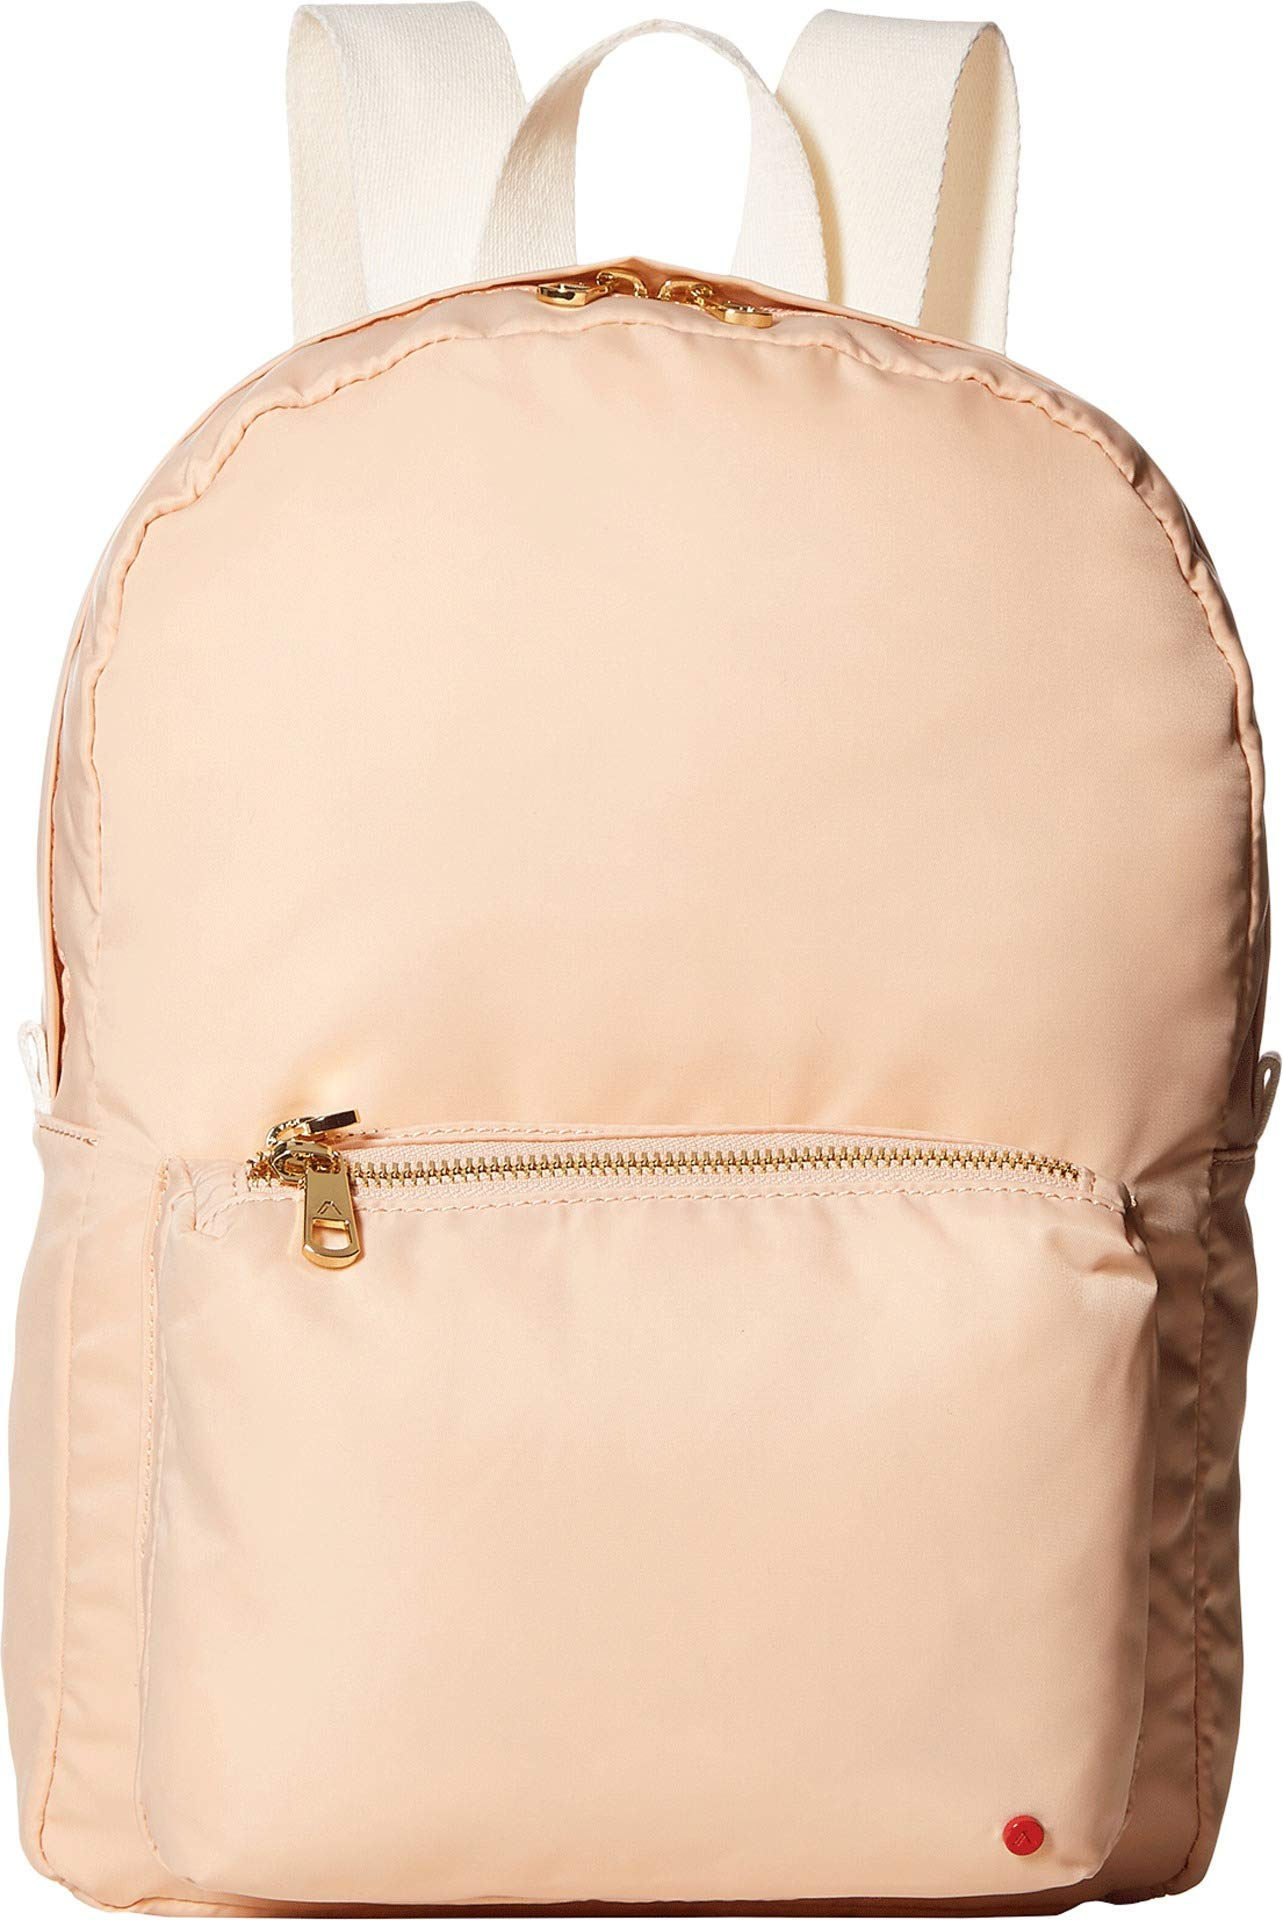 STATE Women's Mini Lorimer Backpack, Sand, Tan, One Size by STATE Bags